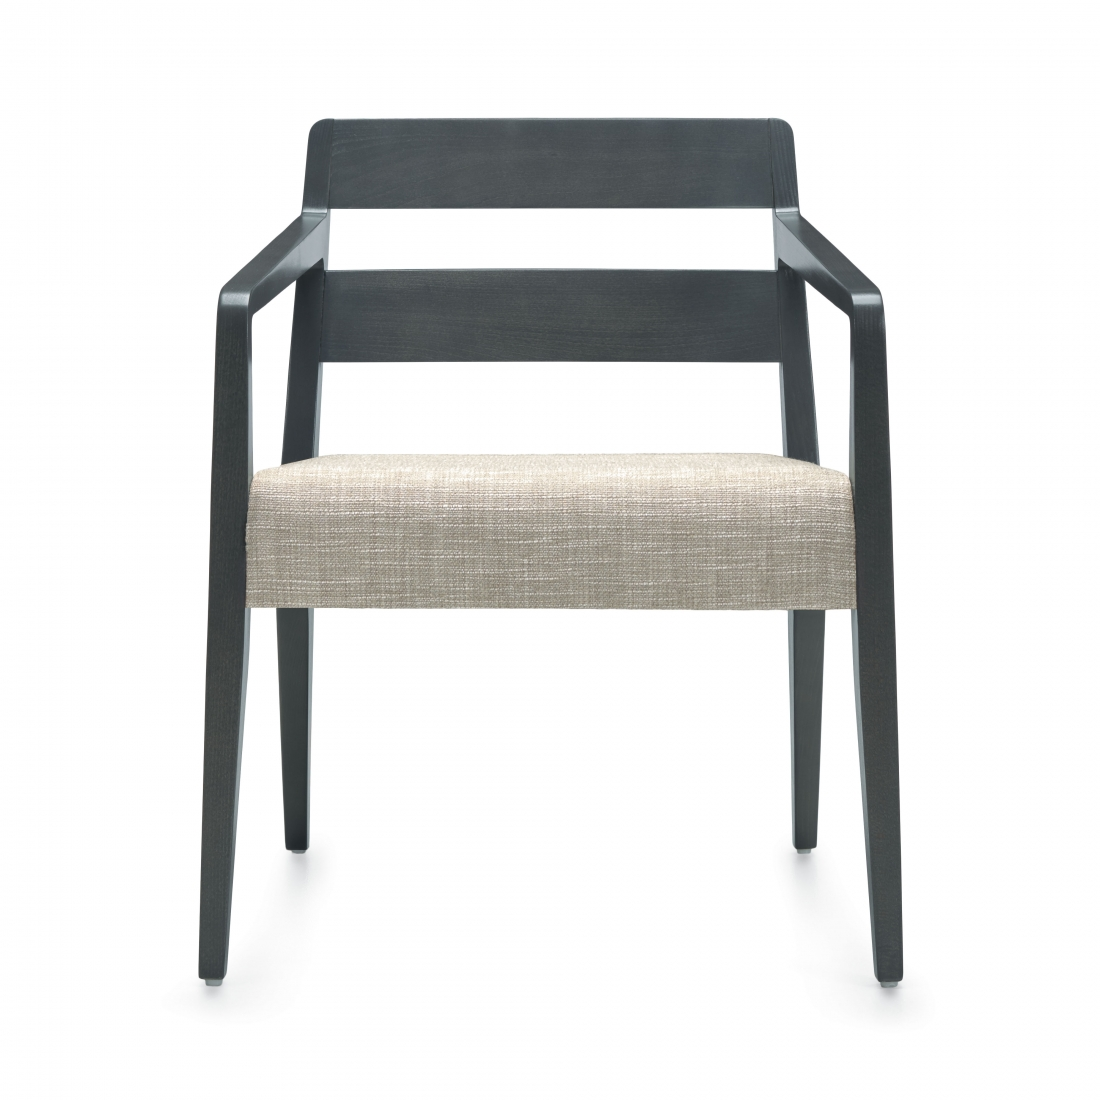 chap chair 1010 with black frame